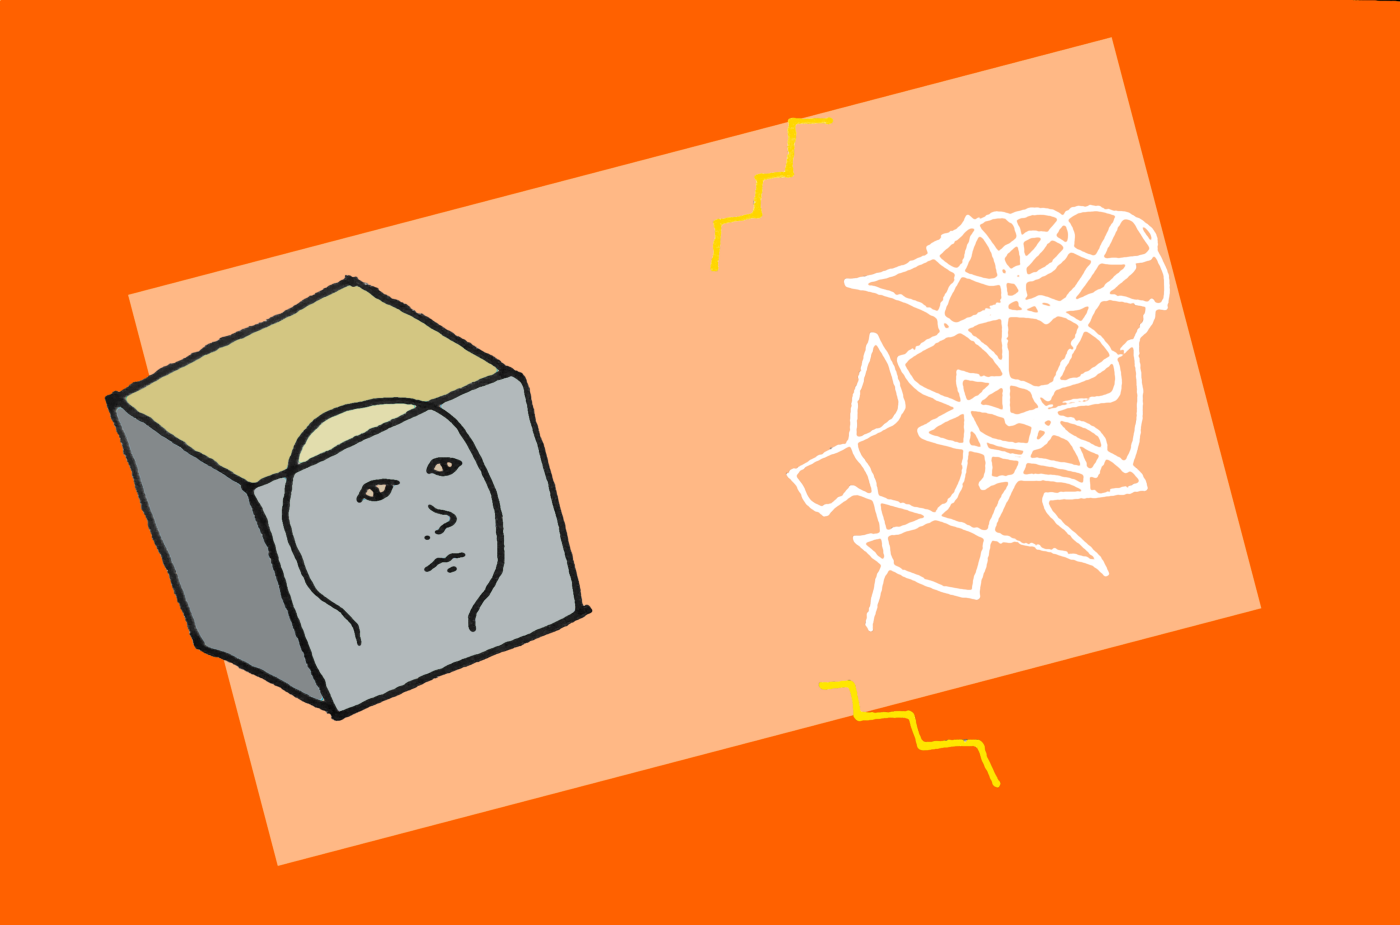 A face in a box is looking at a messy scribble with sparks